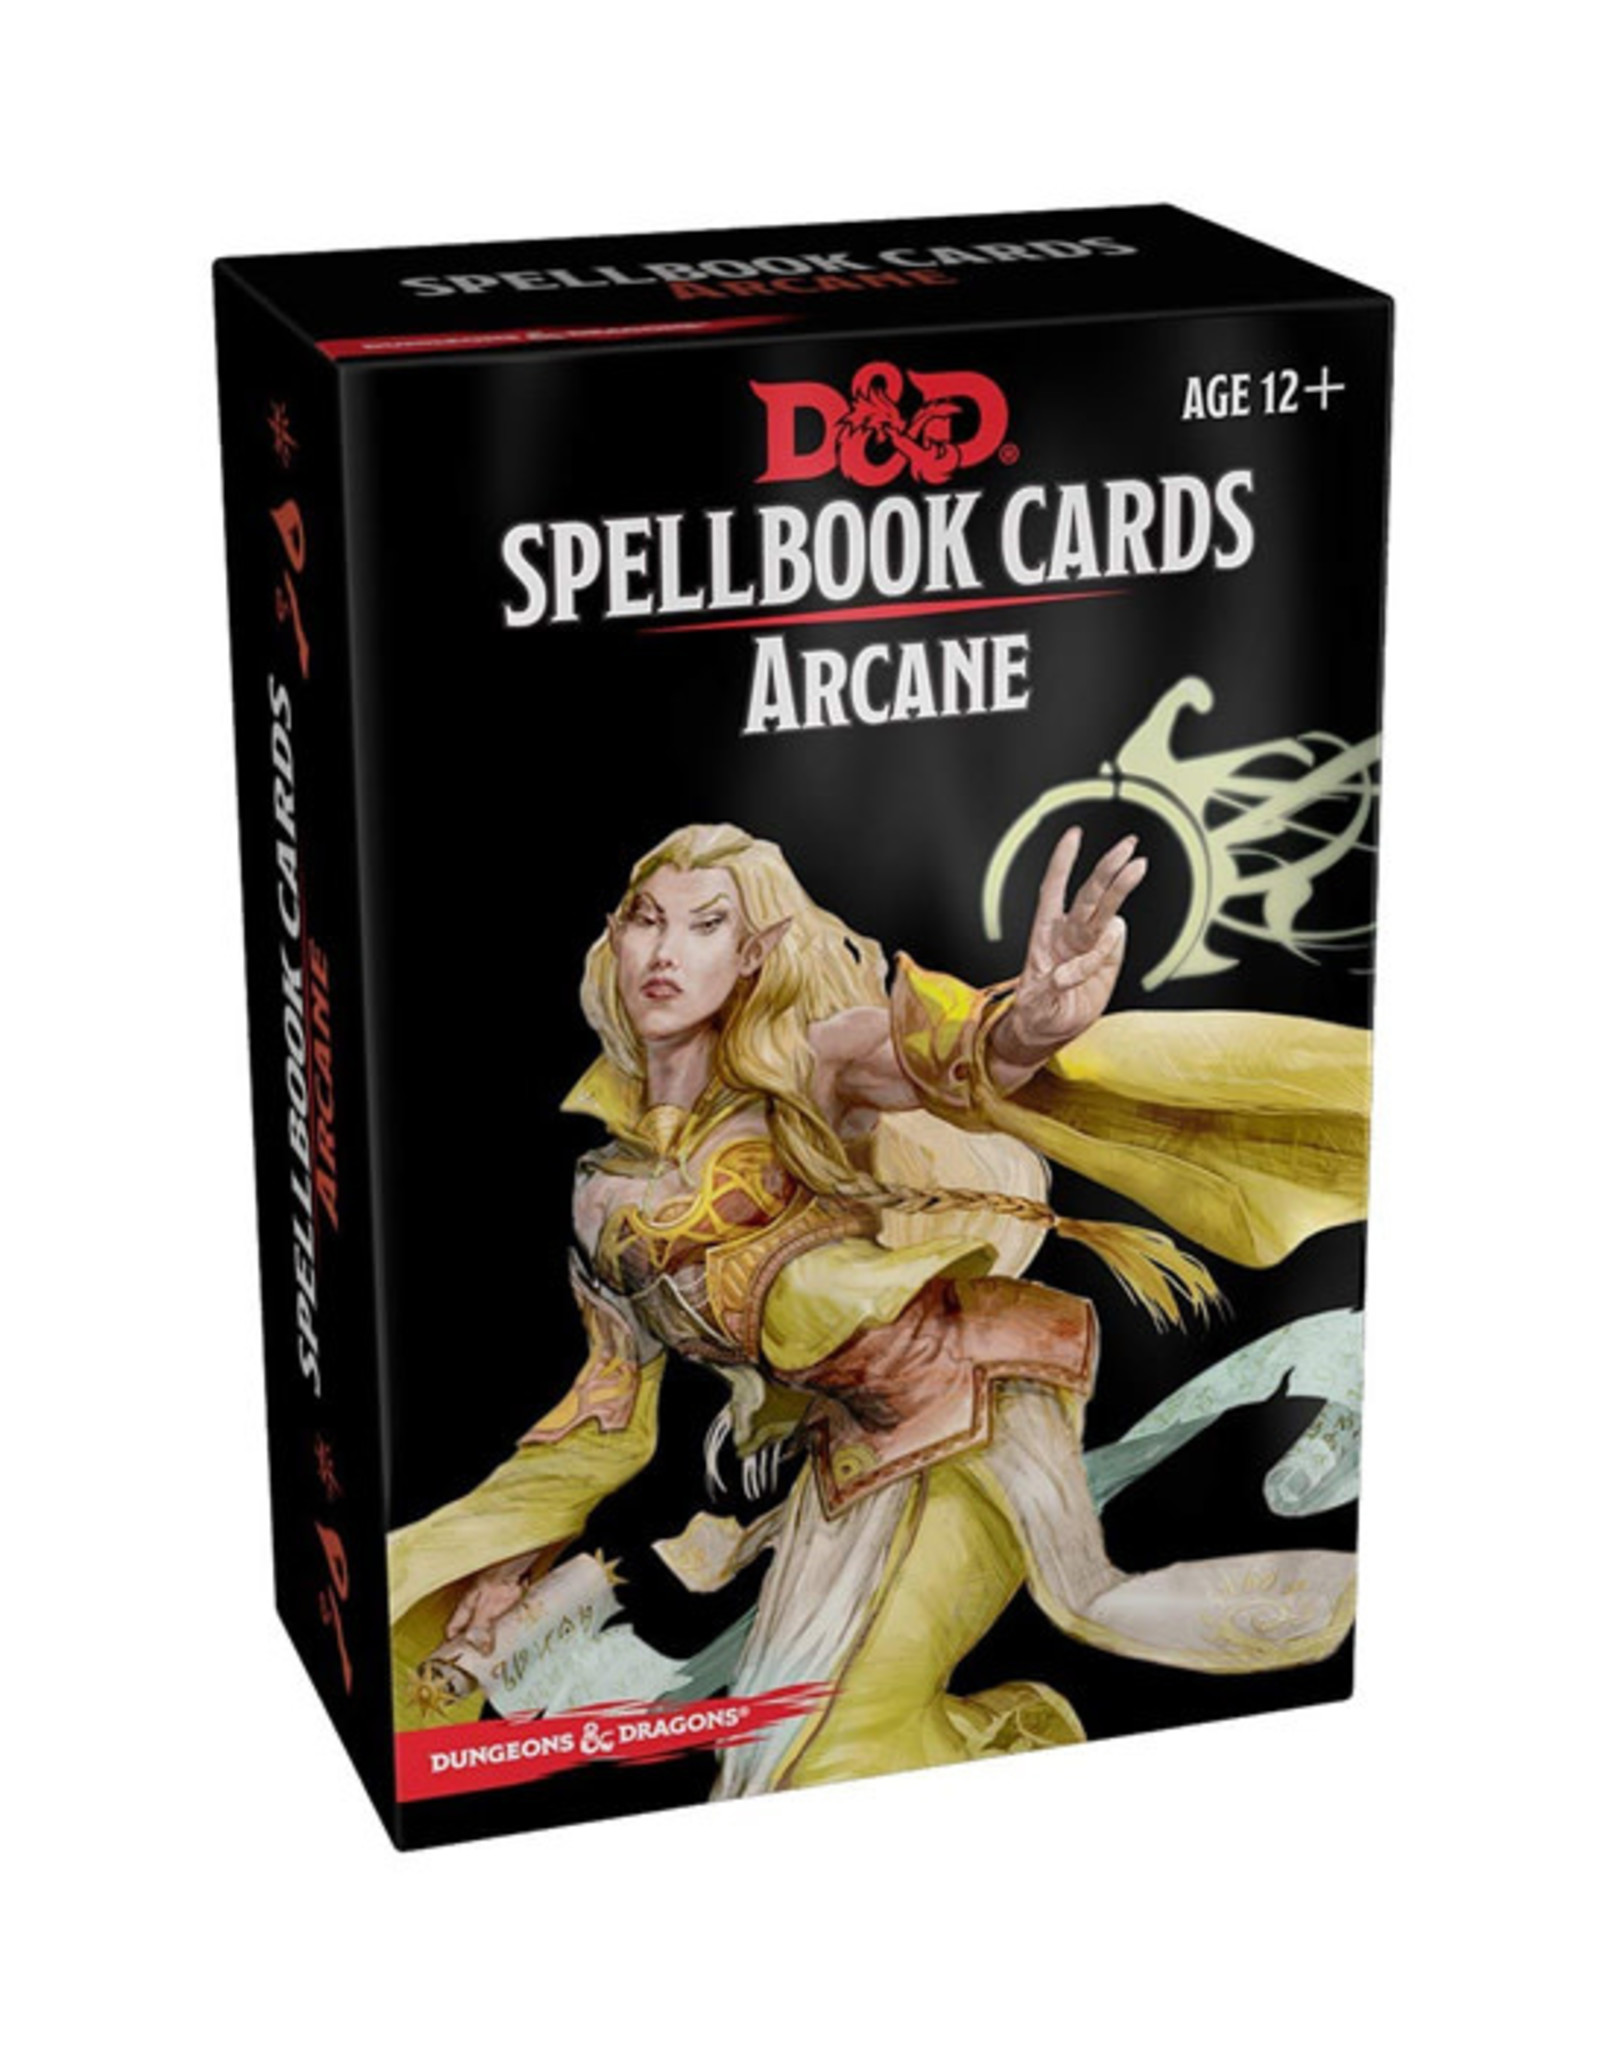 Dungeons & Dragons Dungeons & Dragons: 5th Edition - Spellbook Cards - Arcane